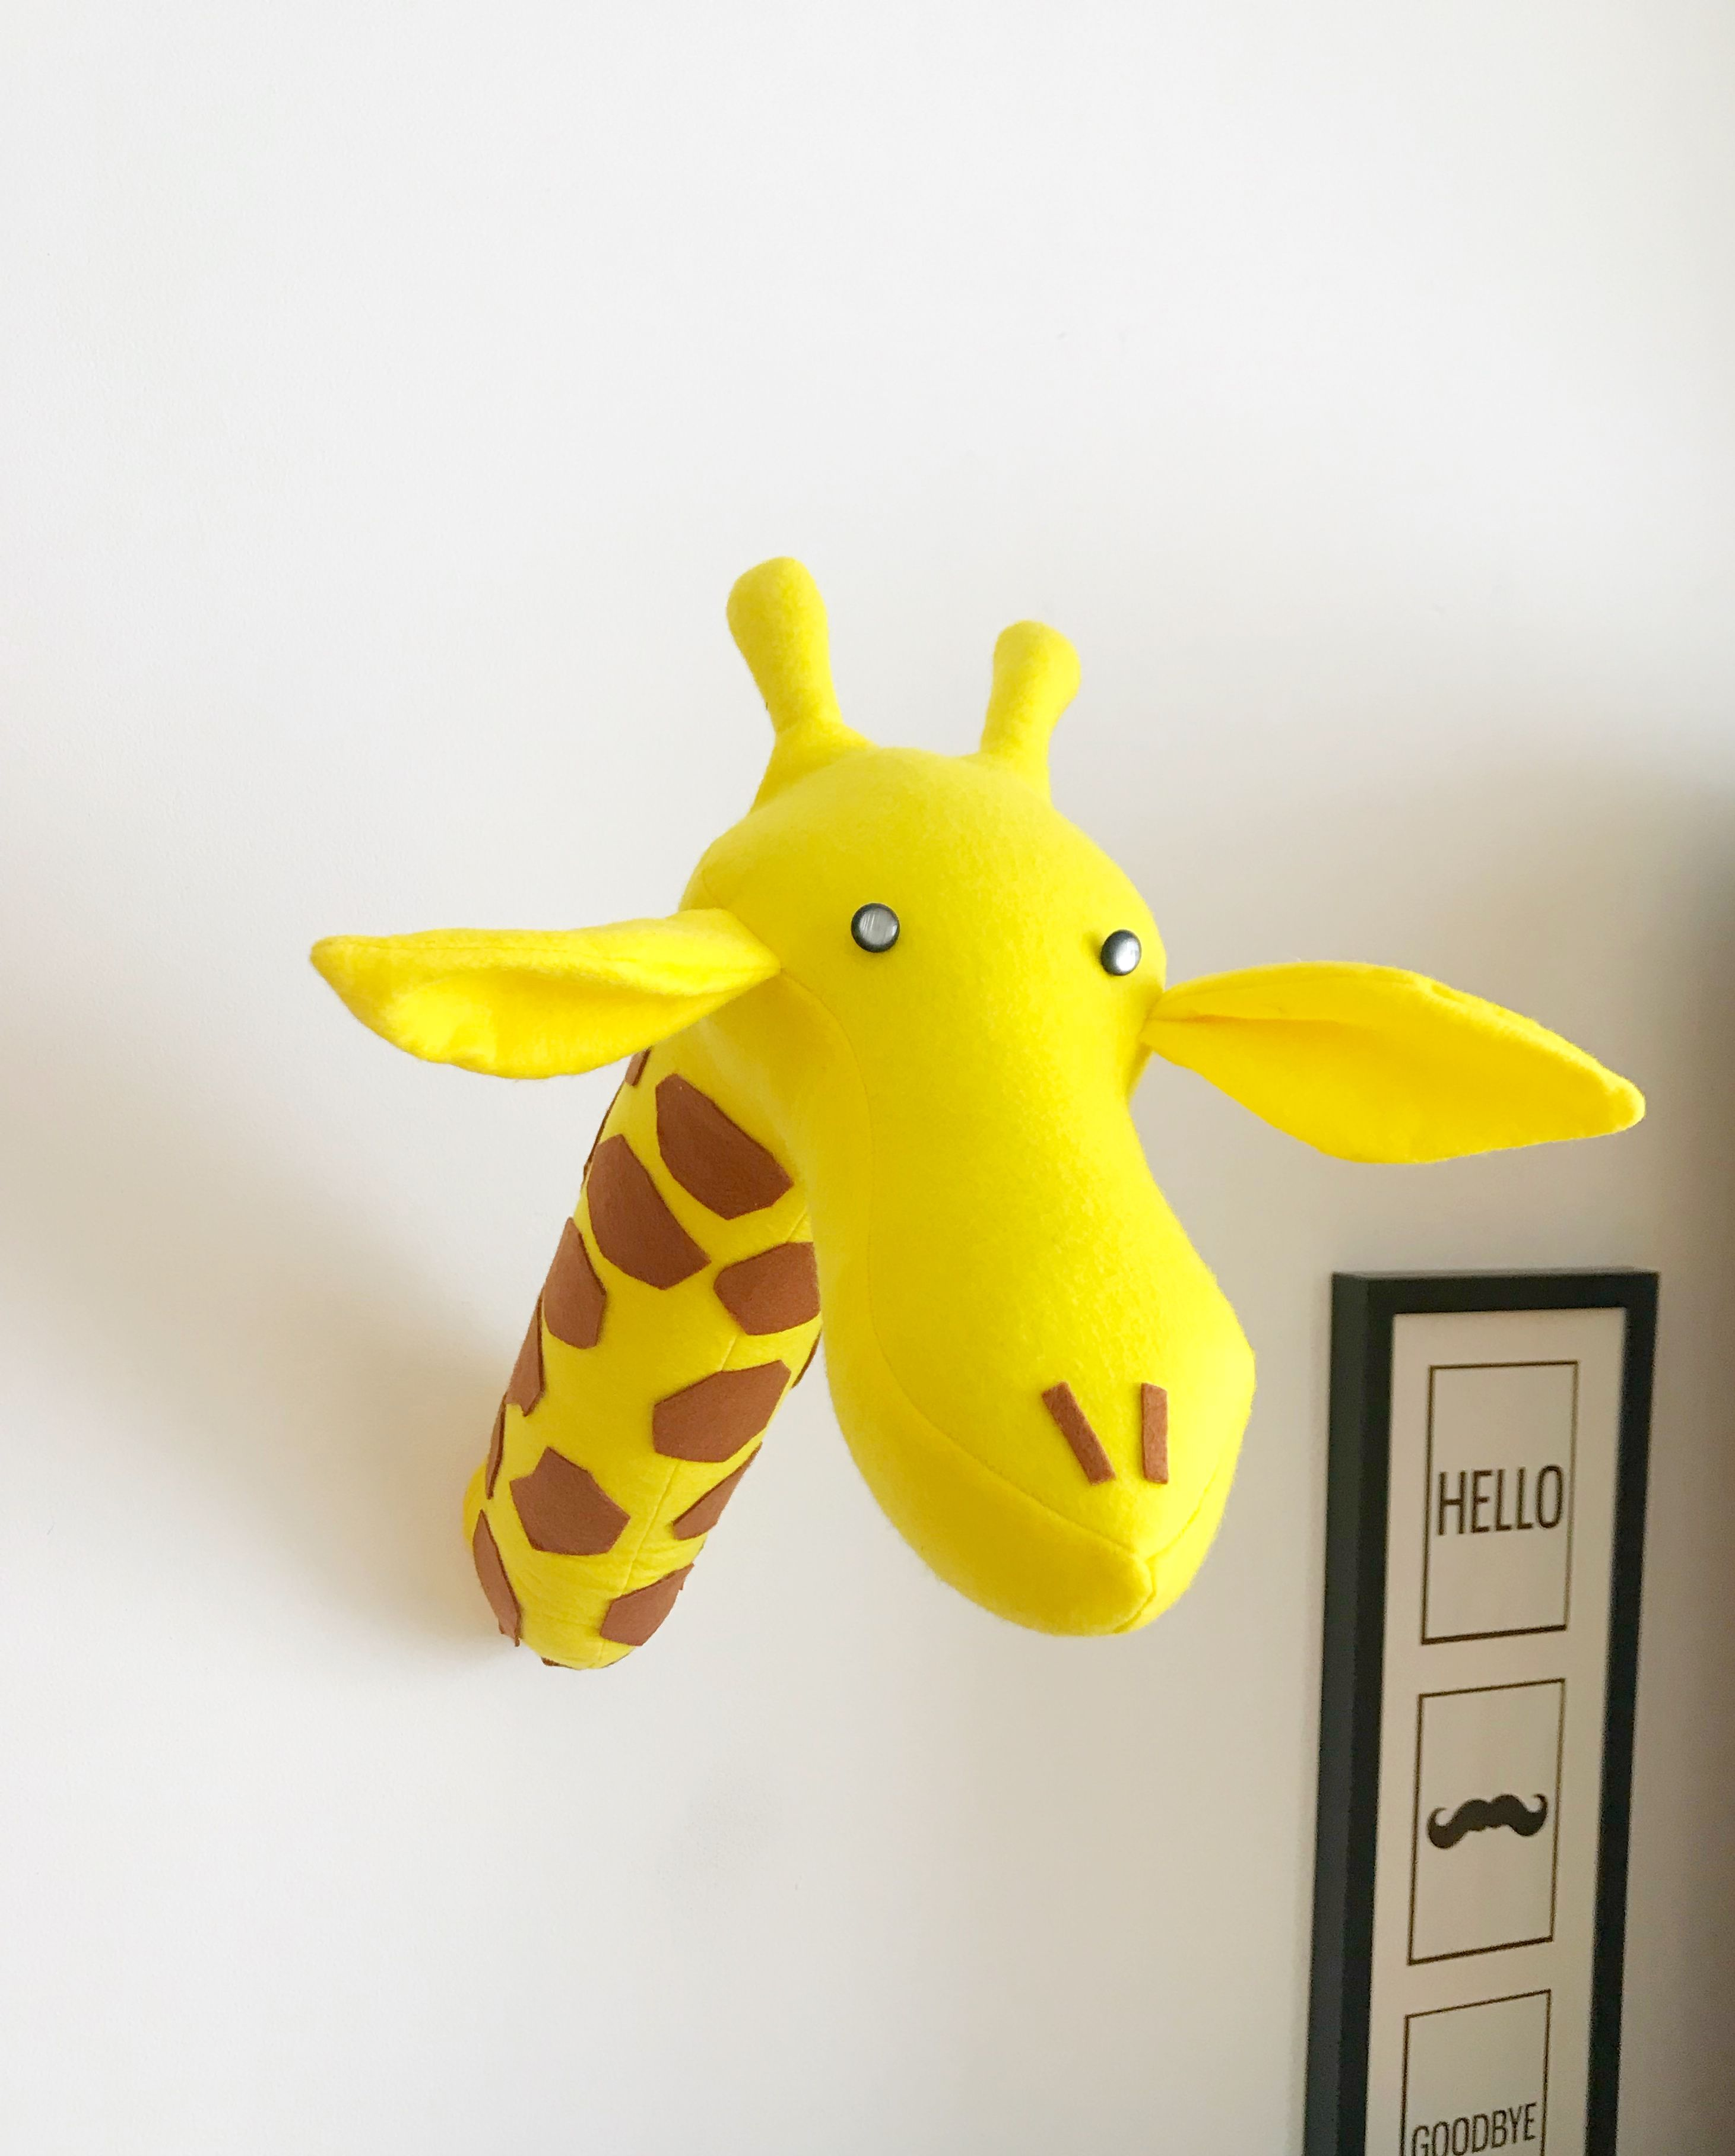 Giraffe Stuffed Animal Head For Wall Mount Baby Room Decor By Kudikisbabybedding Everything For Nursery Dec Baby Shower Giraffe Kid Room Decor Baby Room Decor